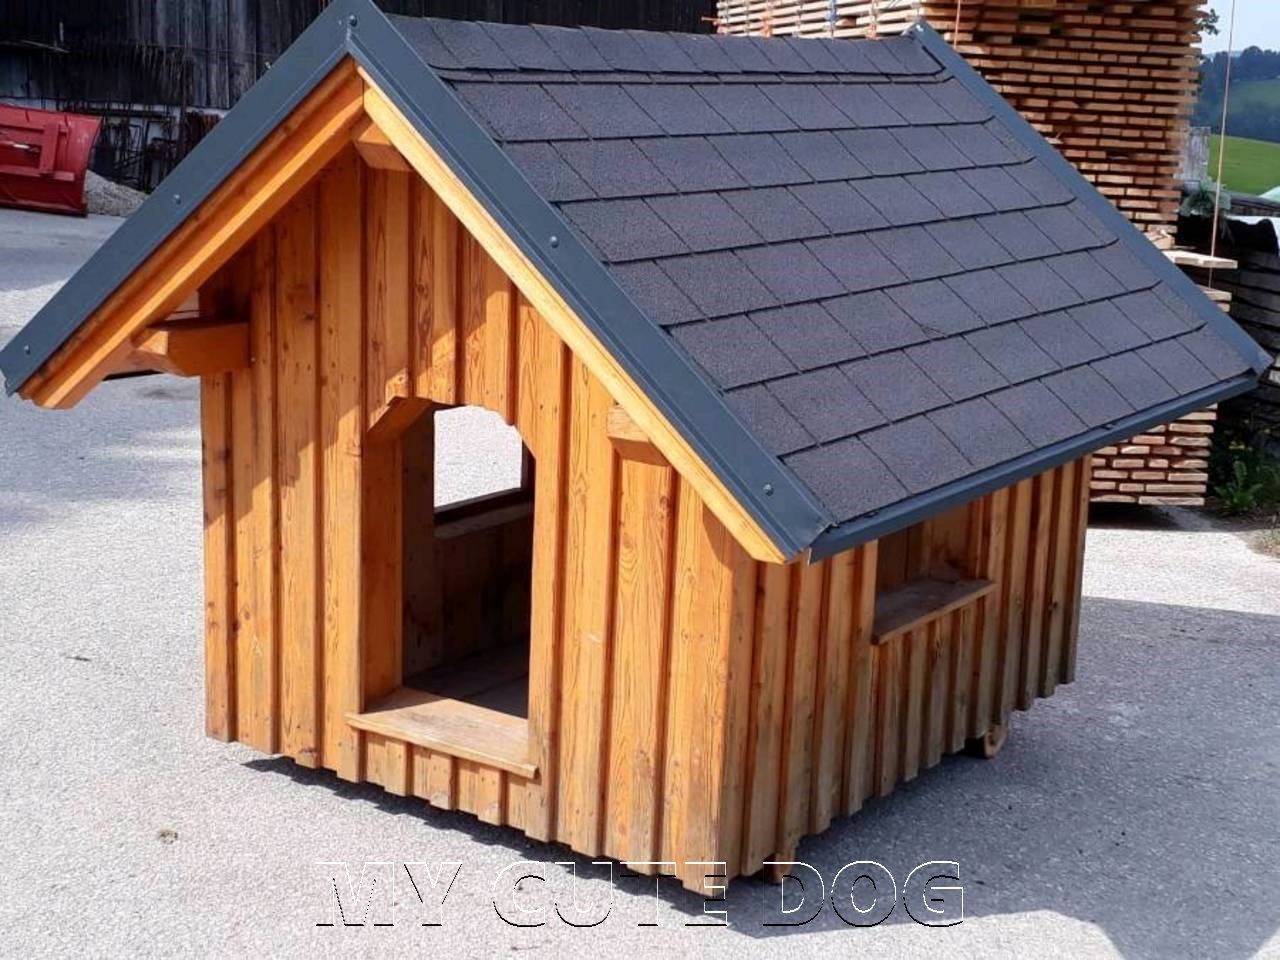 60 Dog House Ideas (With images) Dog house diy, Modern